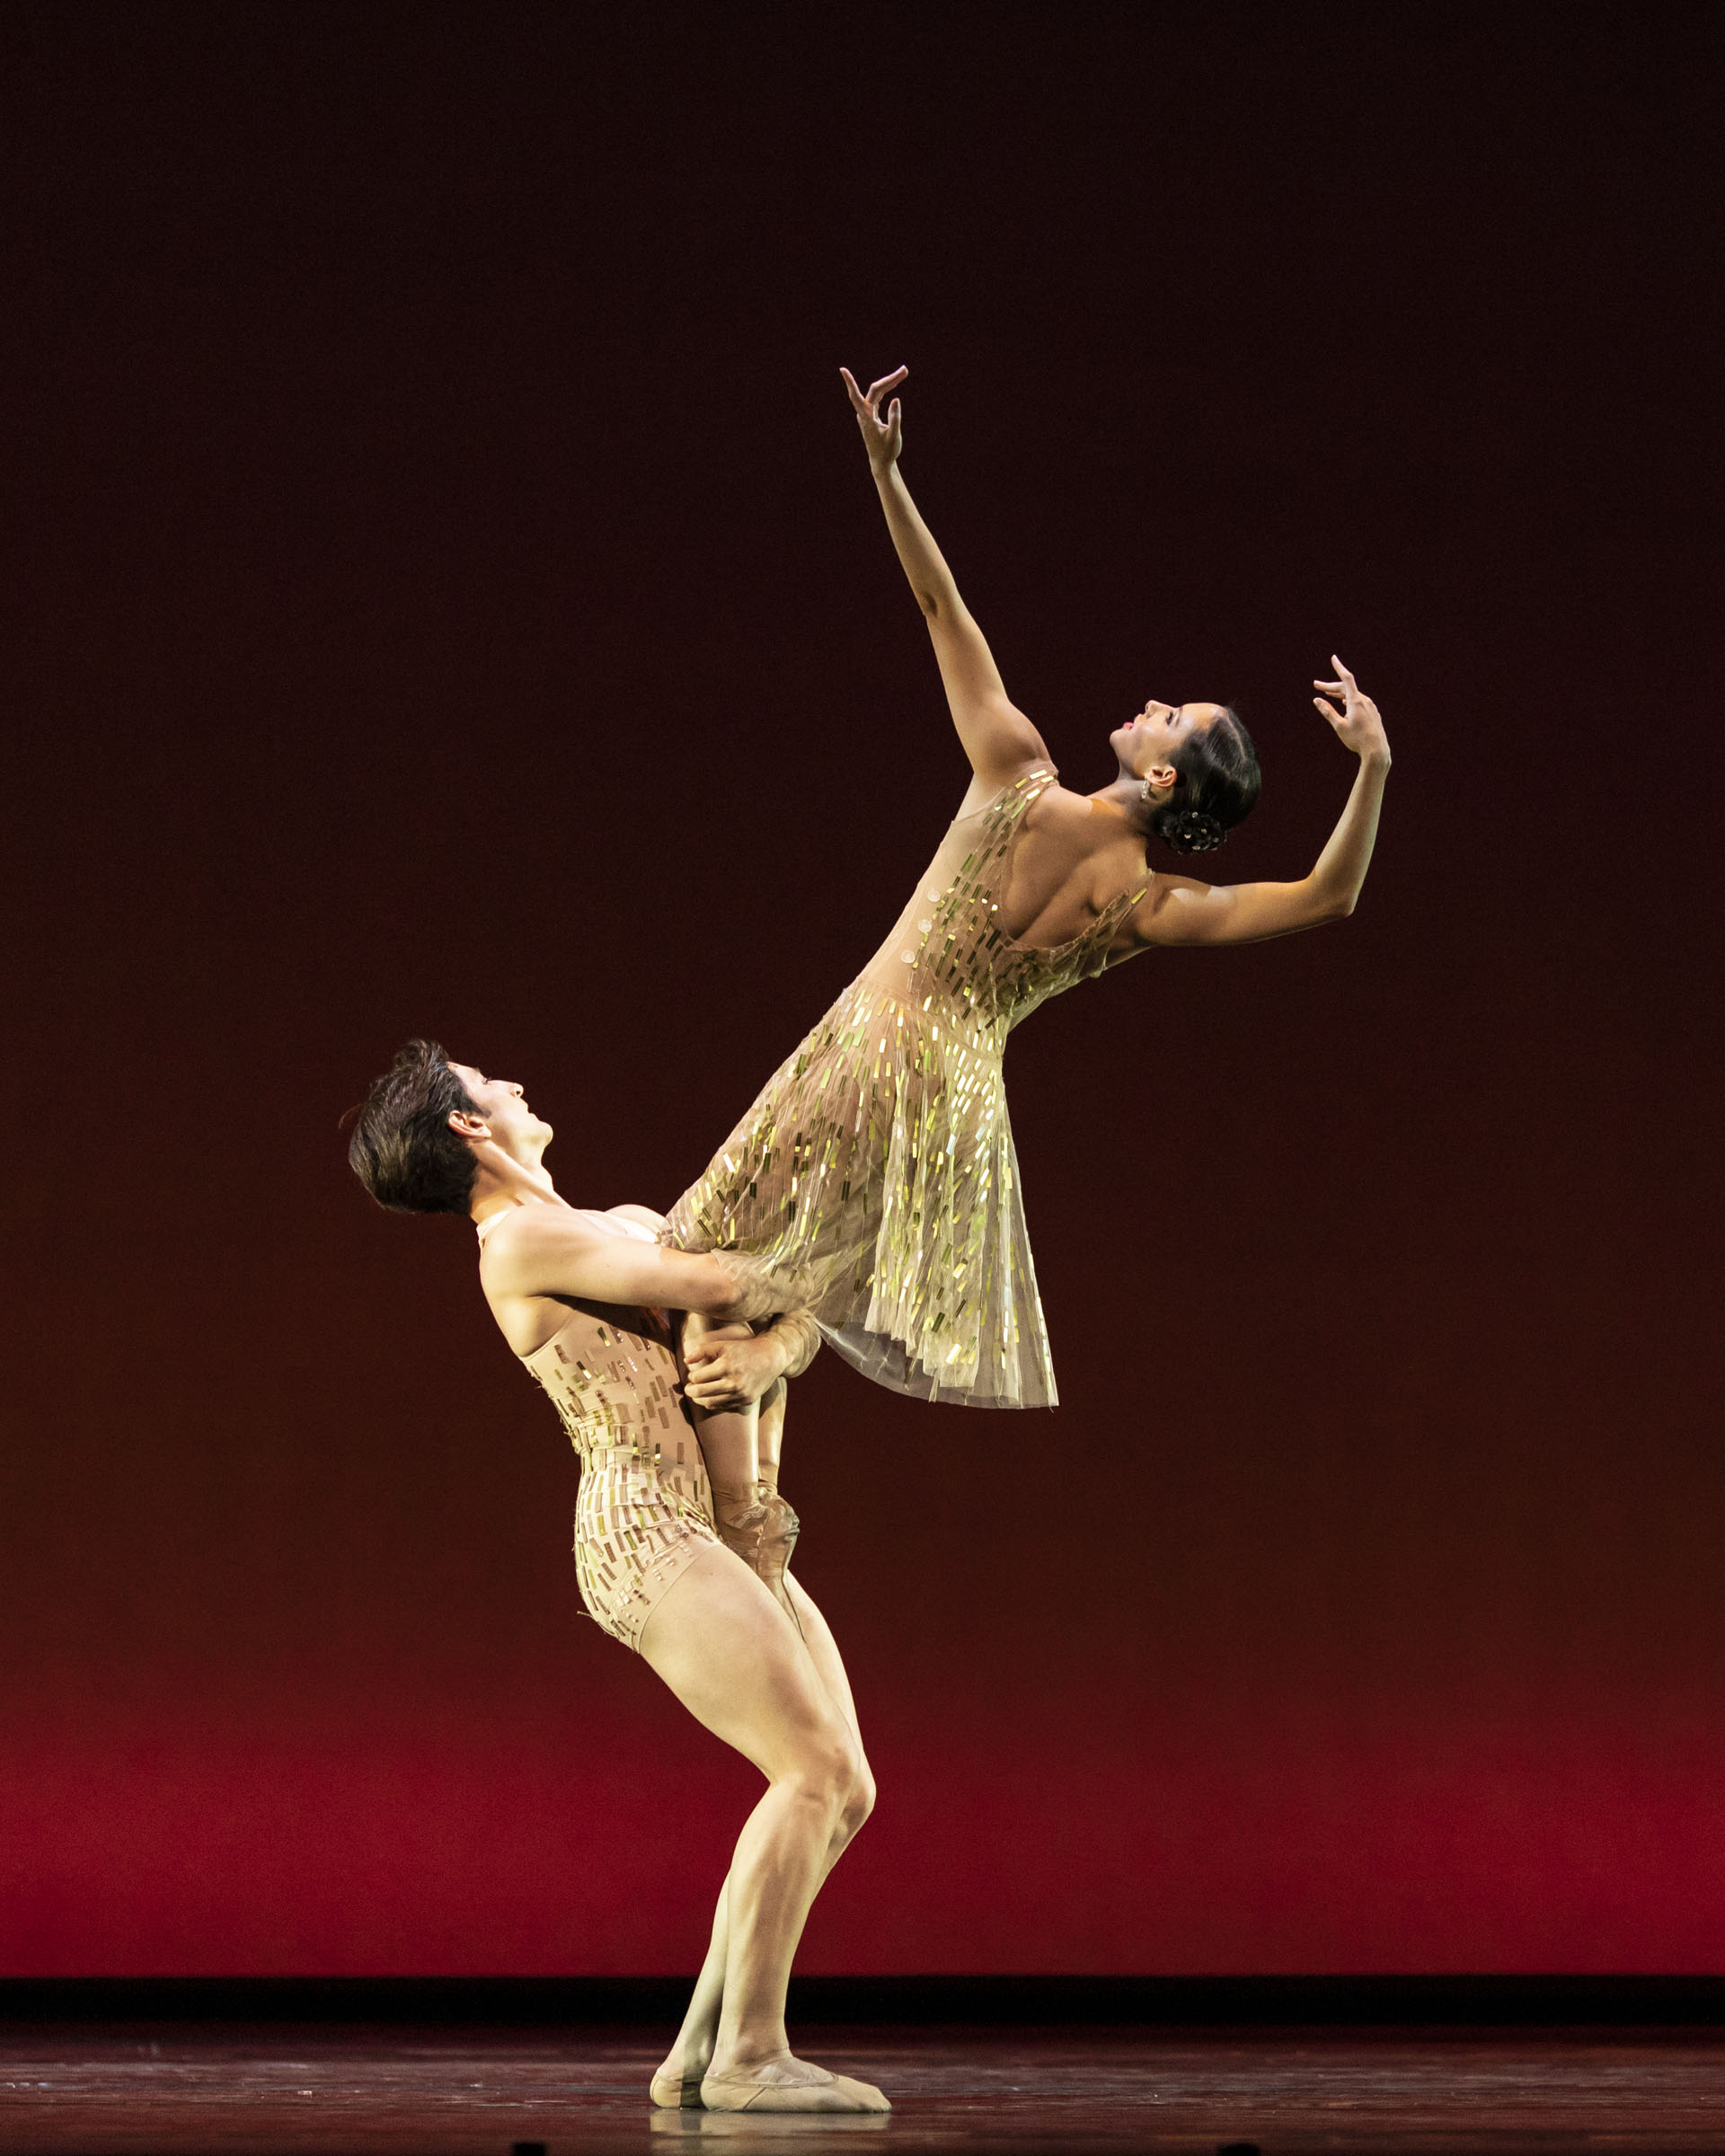 Valentino Zucchetti and Francesca Hayward in 'Within the Golden Hour' at The Royal Opera House